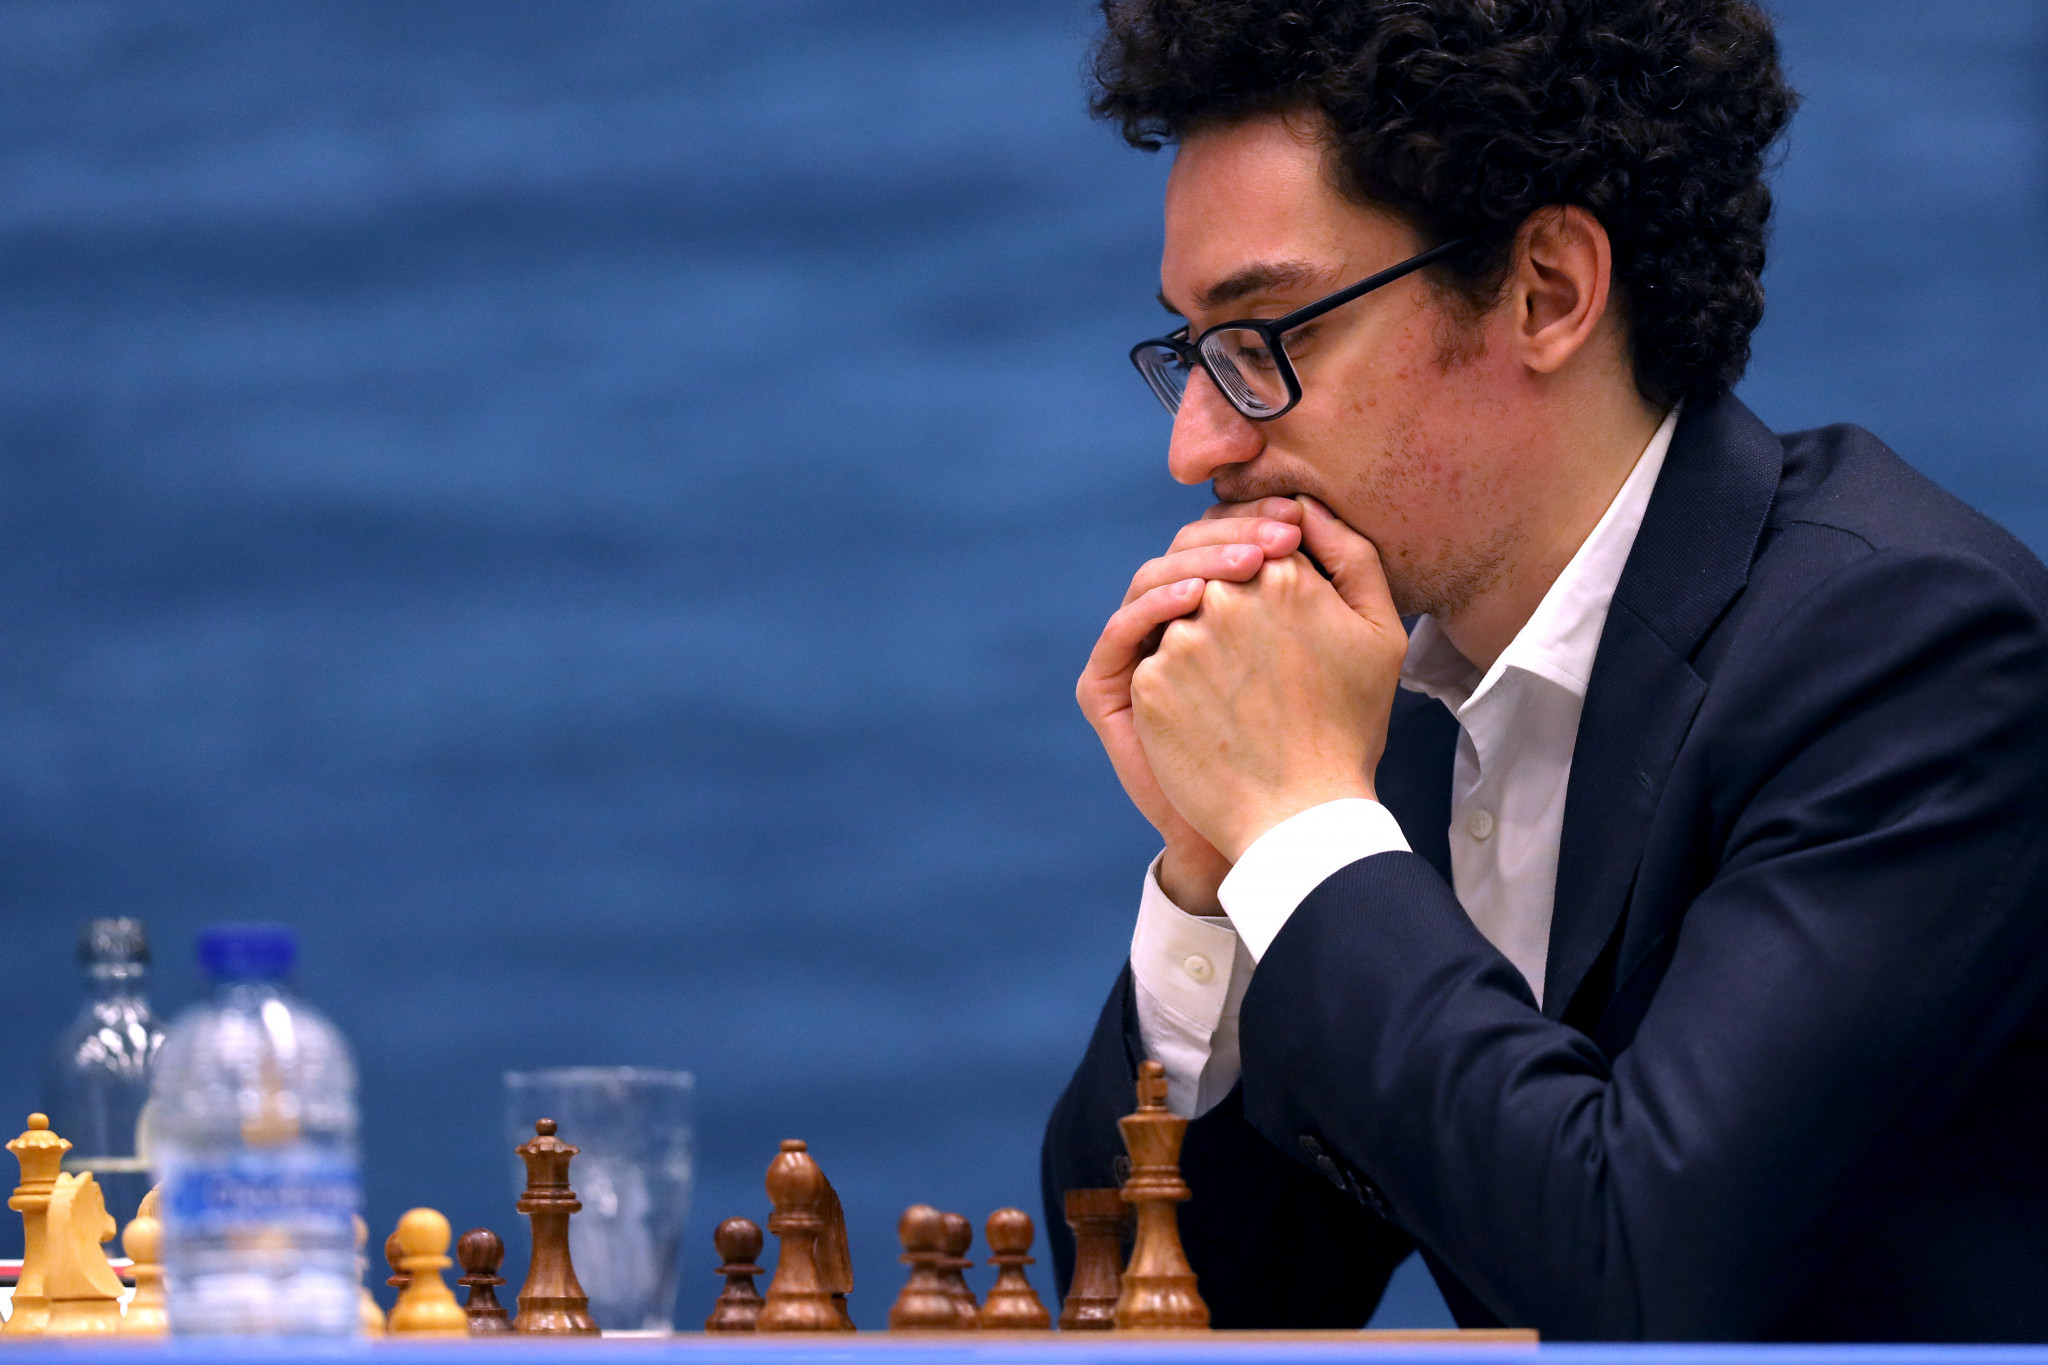 Fabiano Caruana won his second match of the tournament ©Getty Images